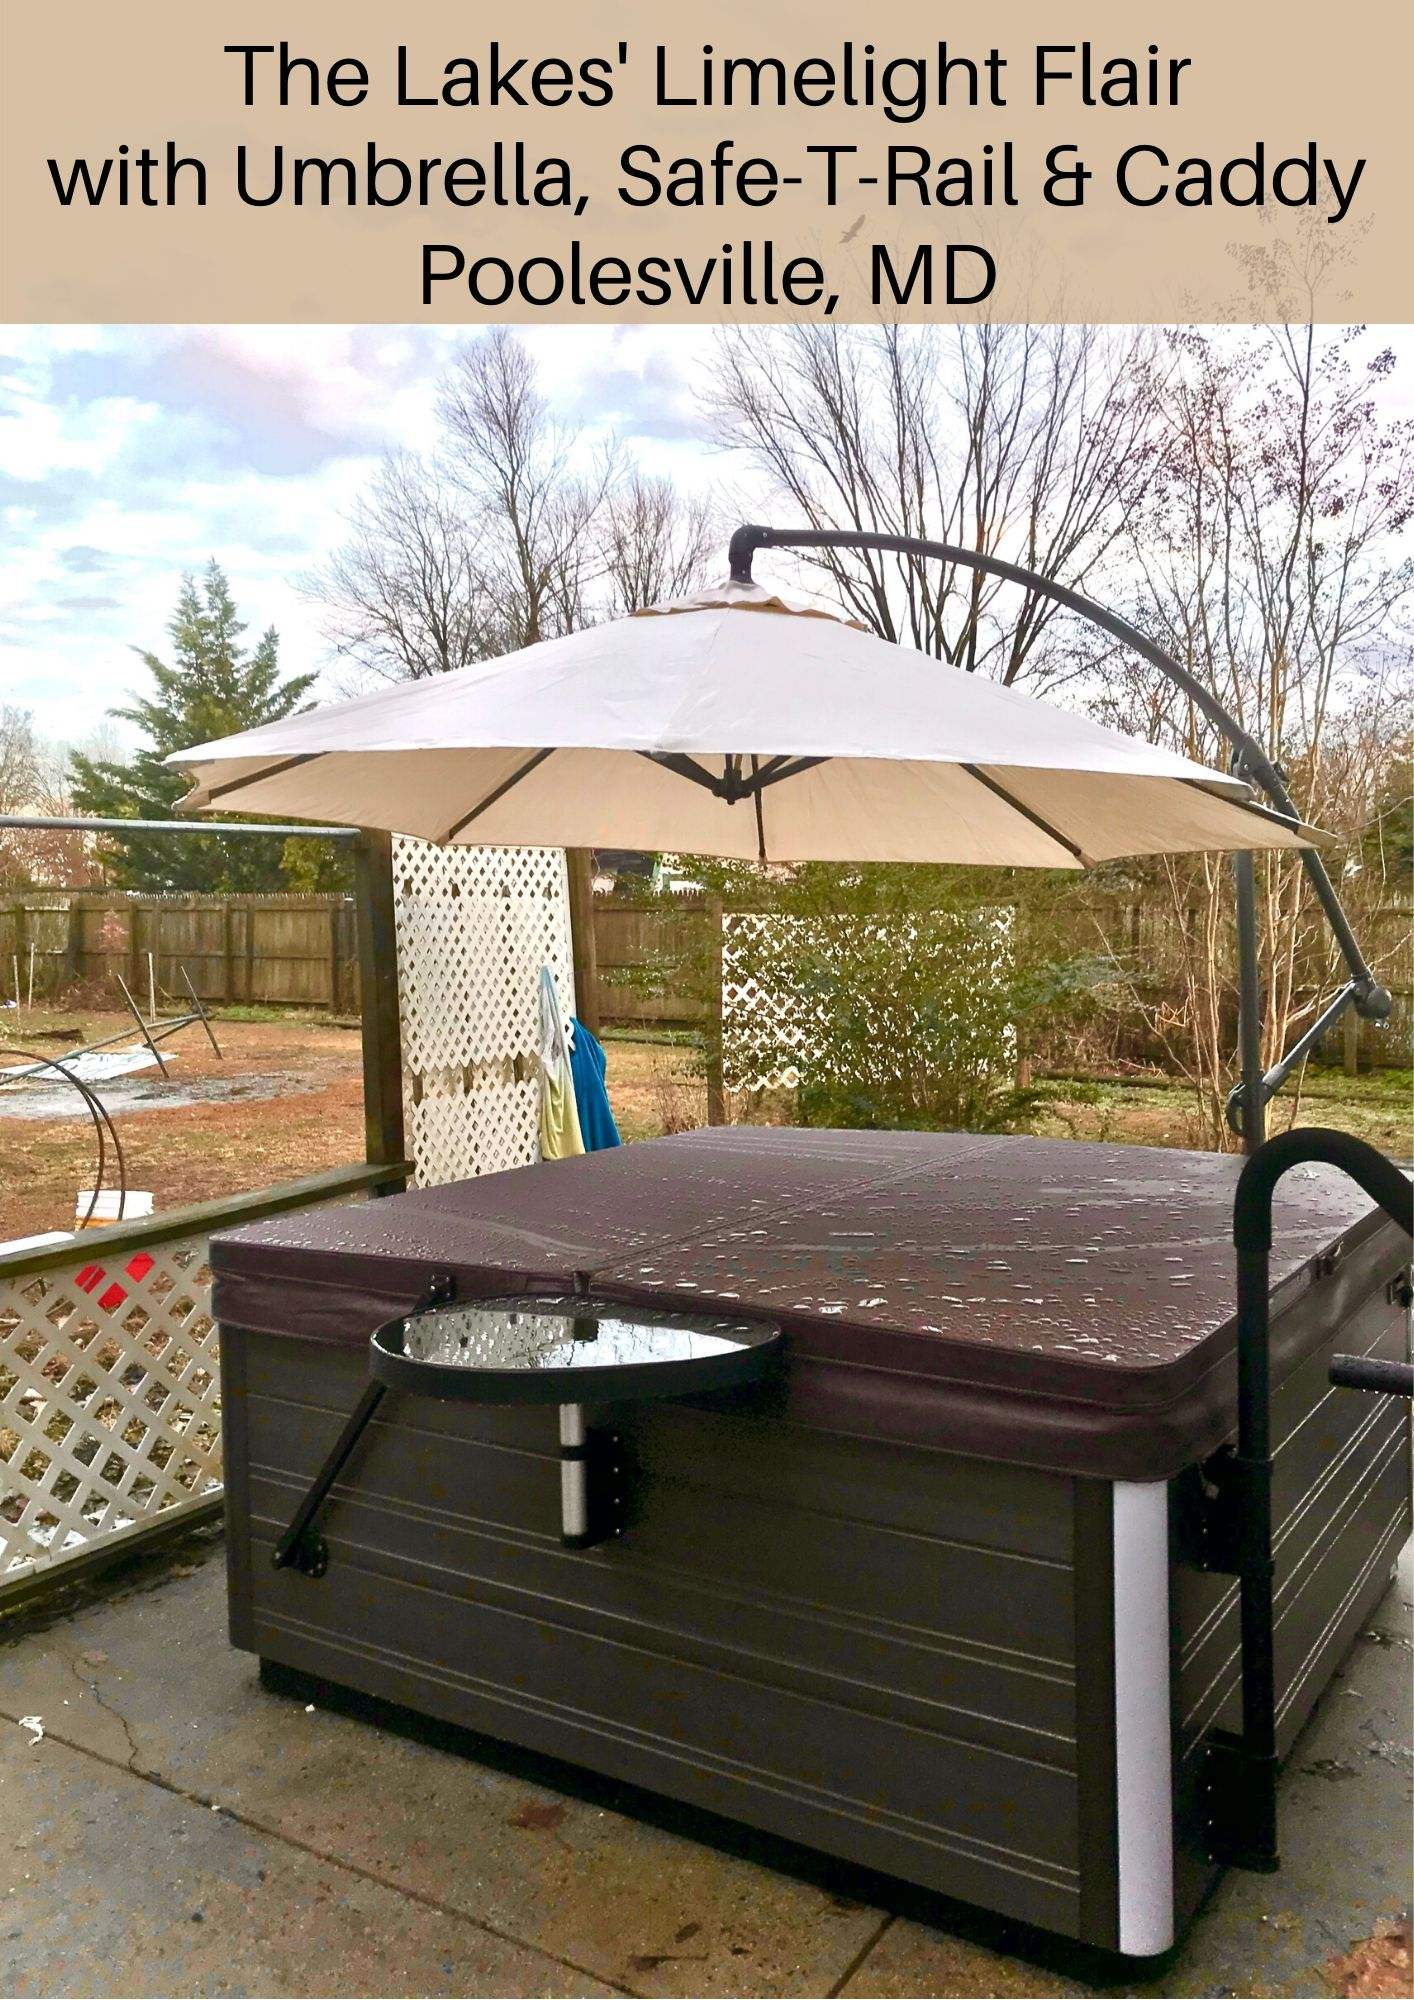 Spa Umbrella, Poolesville, MD